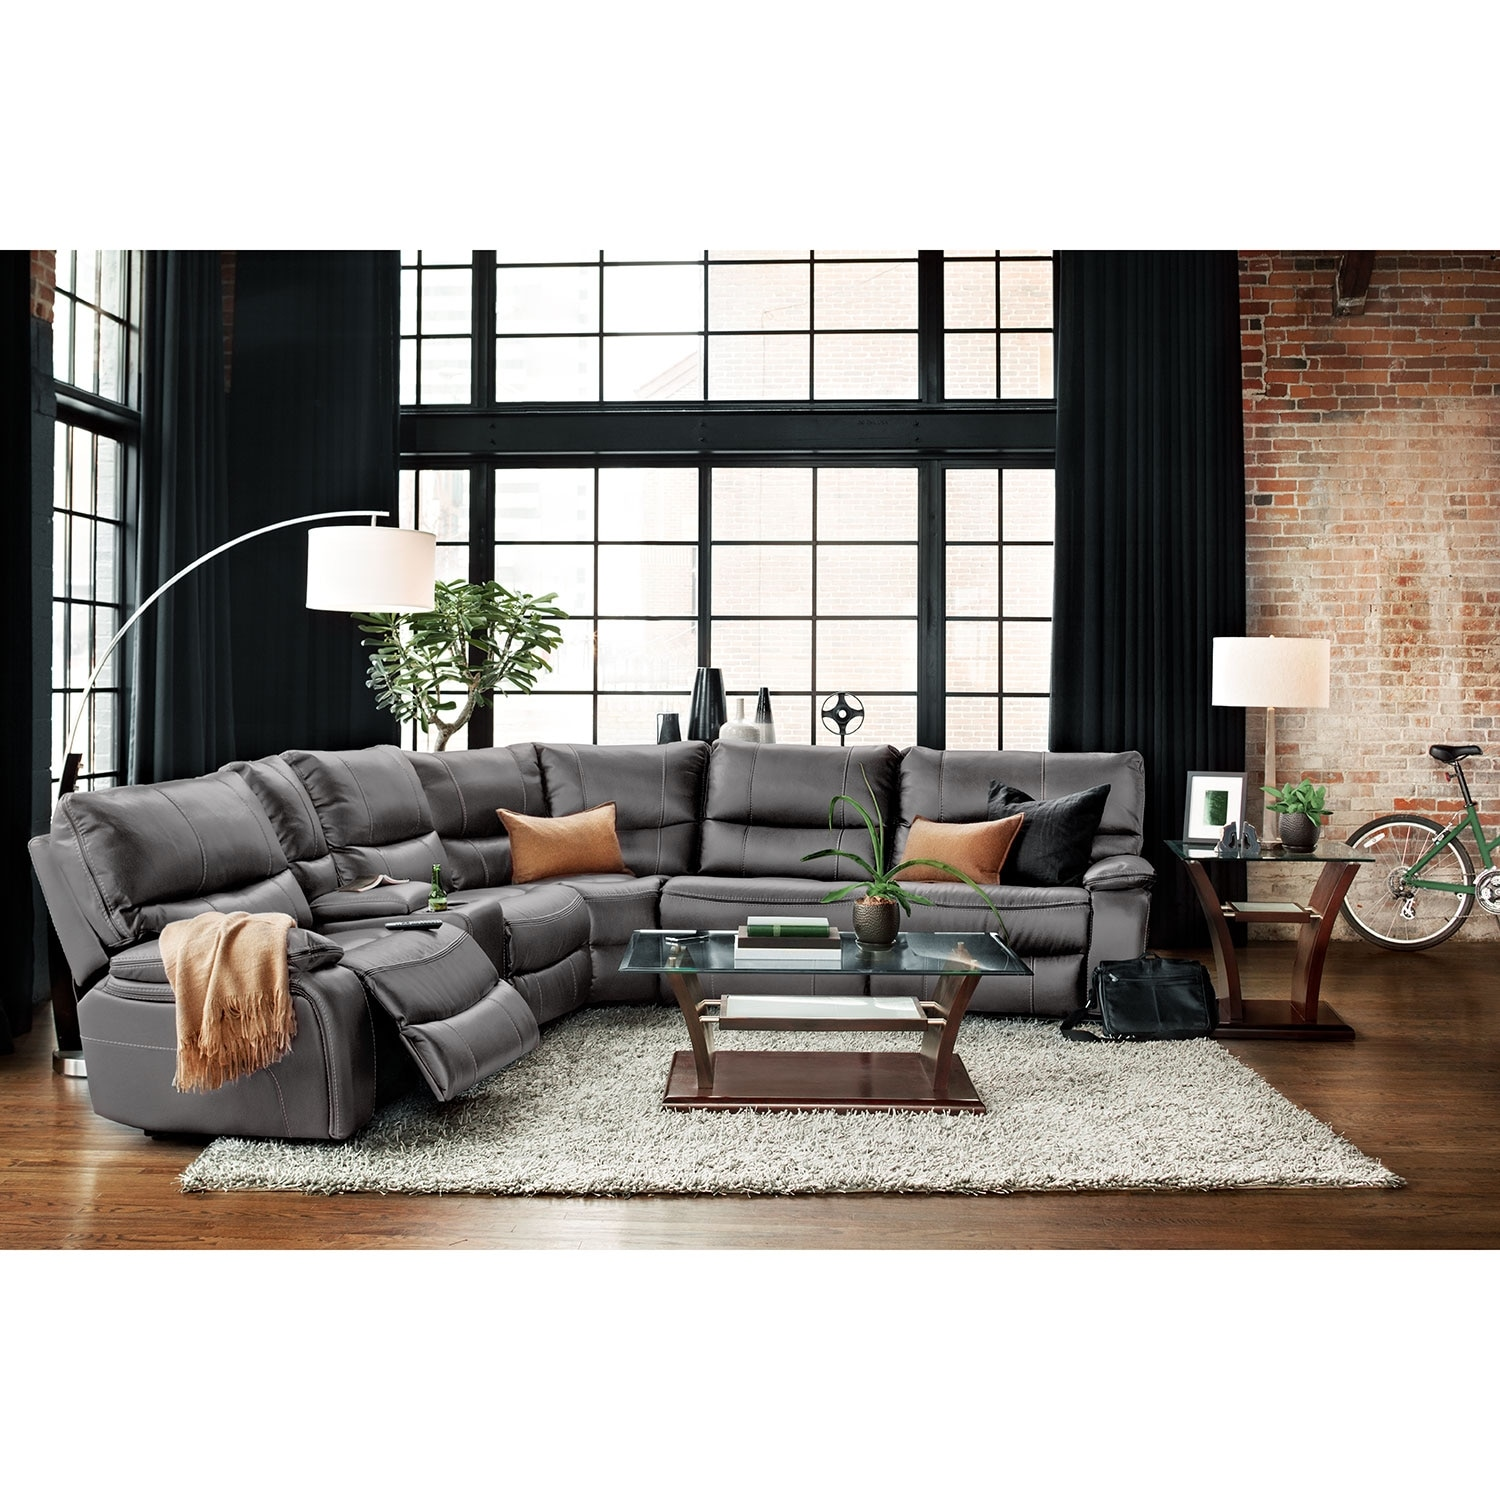 Orlando 6-Piece Power Reclining Sectional with 1 Stationary Chair